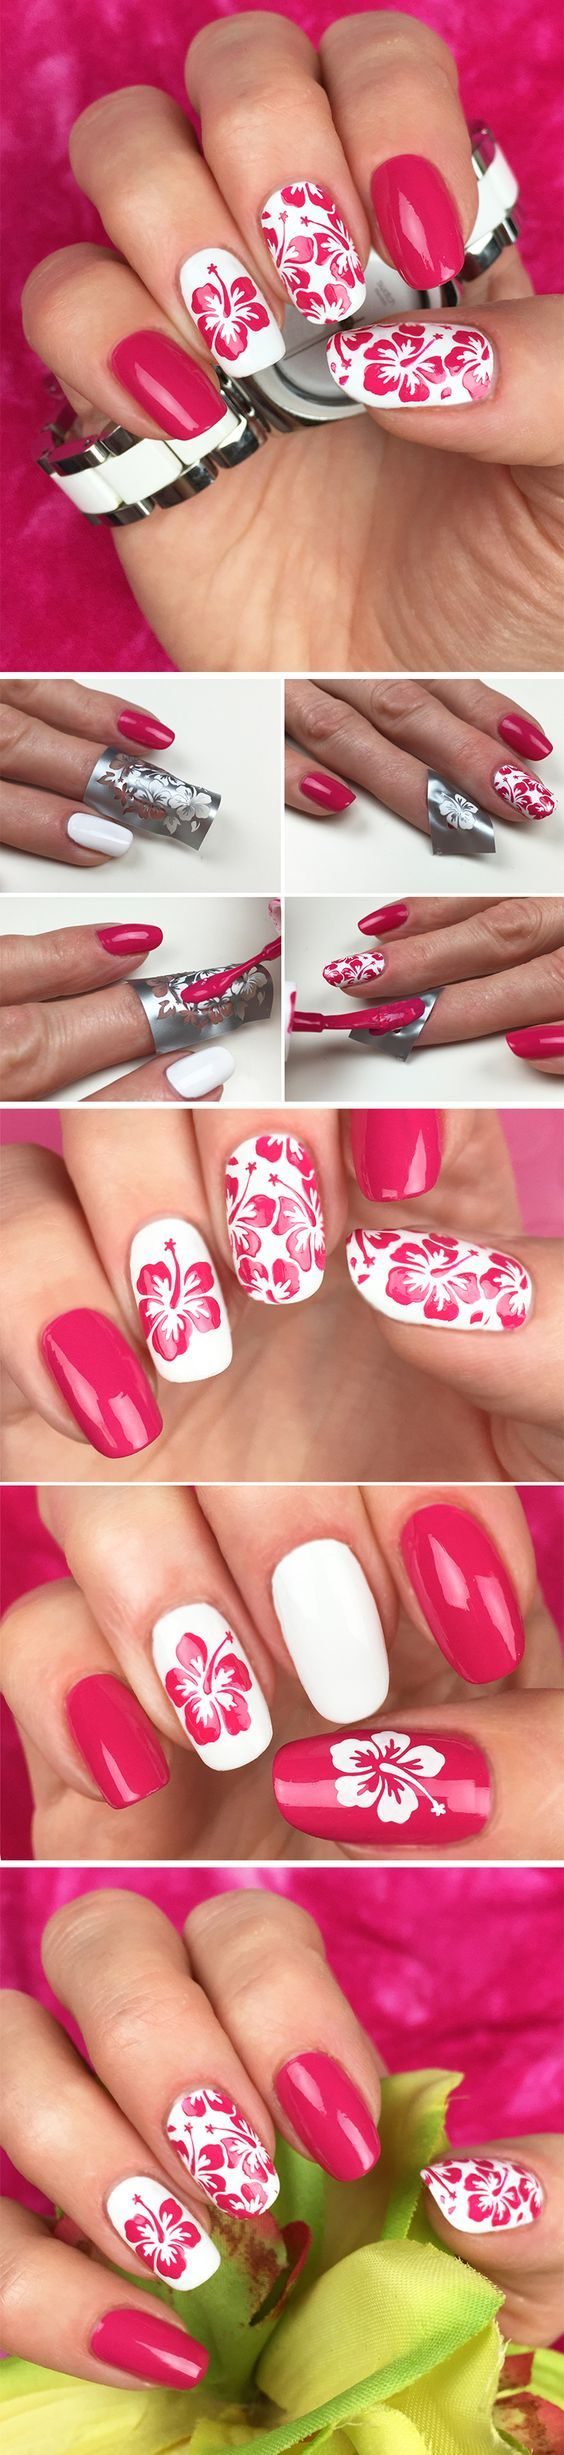 Lorde inspired nail tutorial - Nail Stencils Design Aloha Nailart For More Findings Pls Visit Www Pinterest